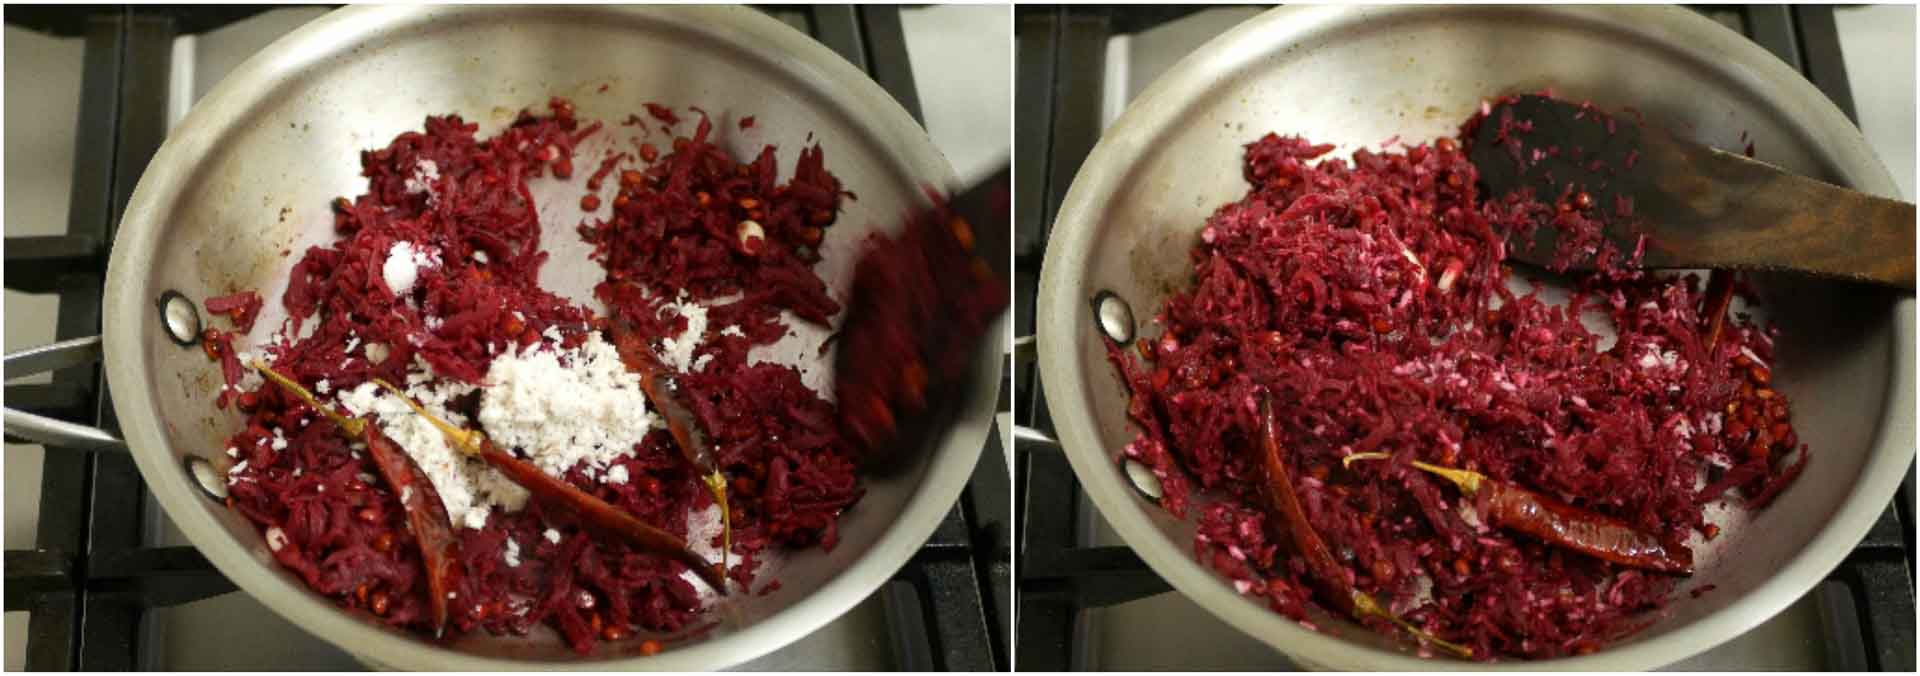 beetroot-thogayal-beetroot-thuvaiyal-recipe-5